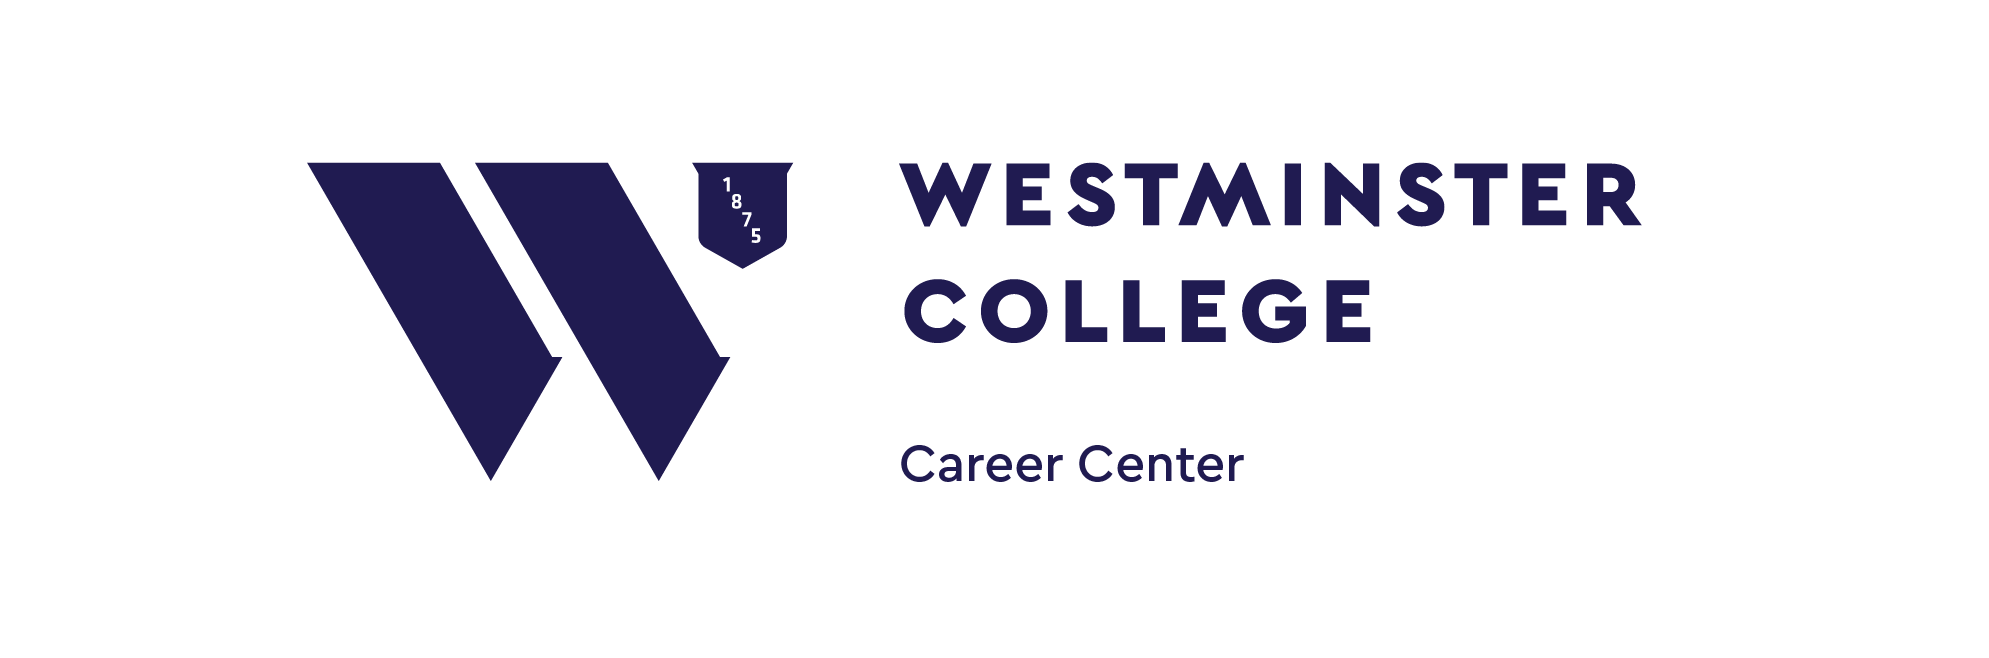 Westminster College Banner